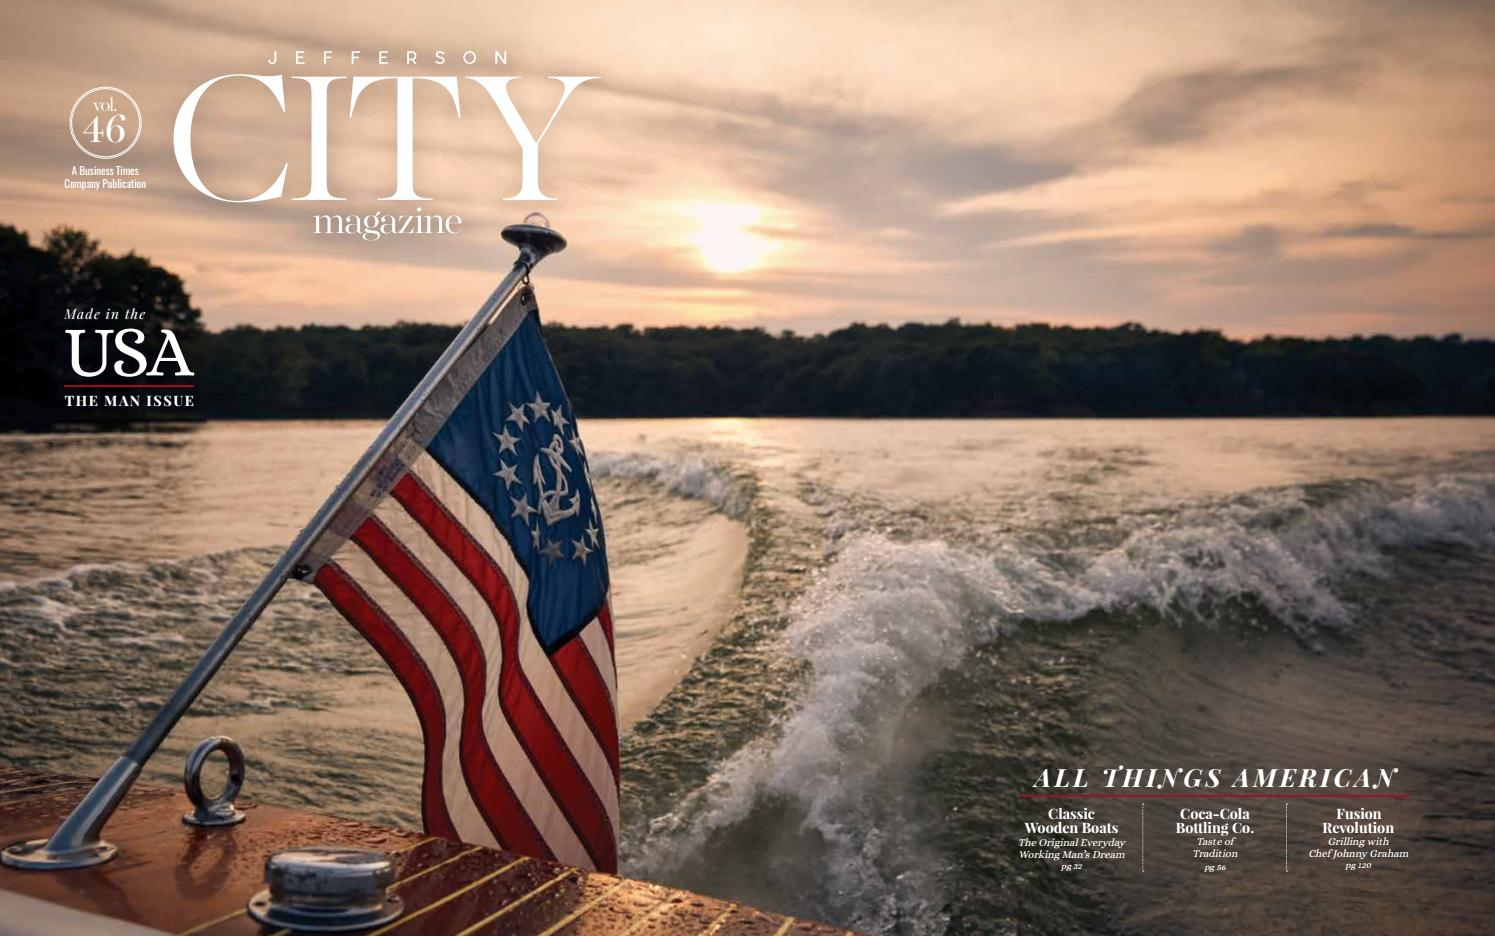 3c1f65bbd5 Jefferson City Magazine -July Aug 2018 by Business Times Company - issuu